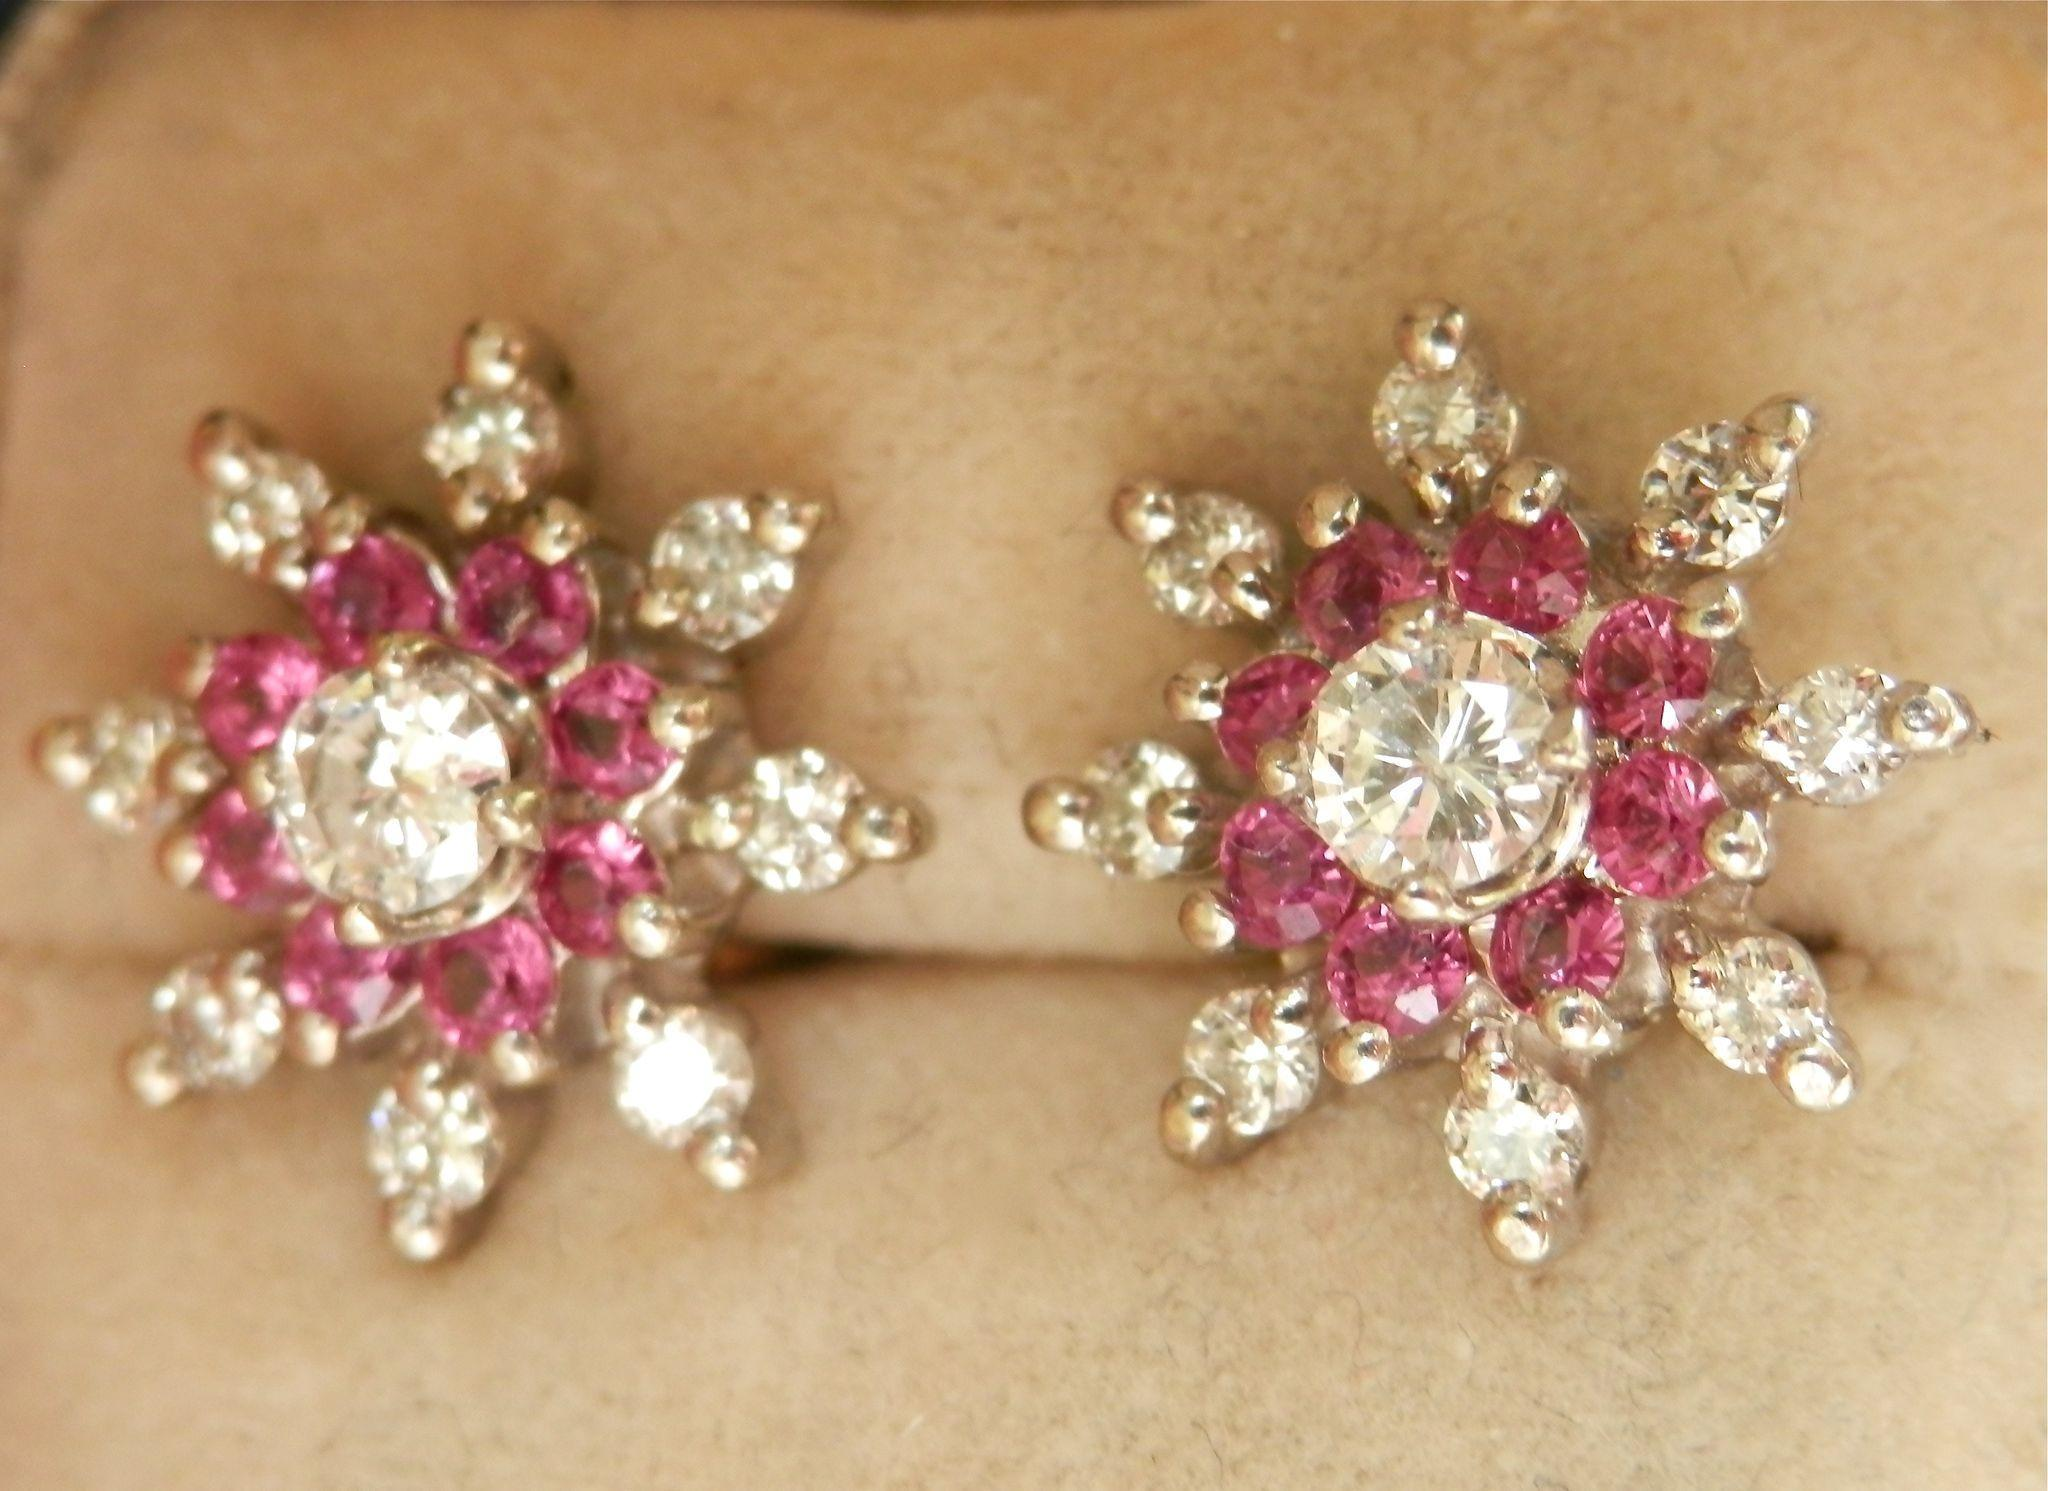 Stunning 14K W/Gold Ruby Diamond Floral Earrings